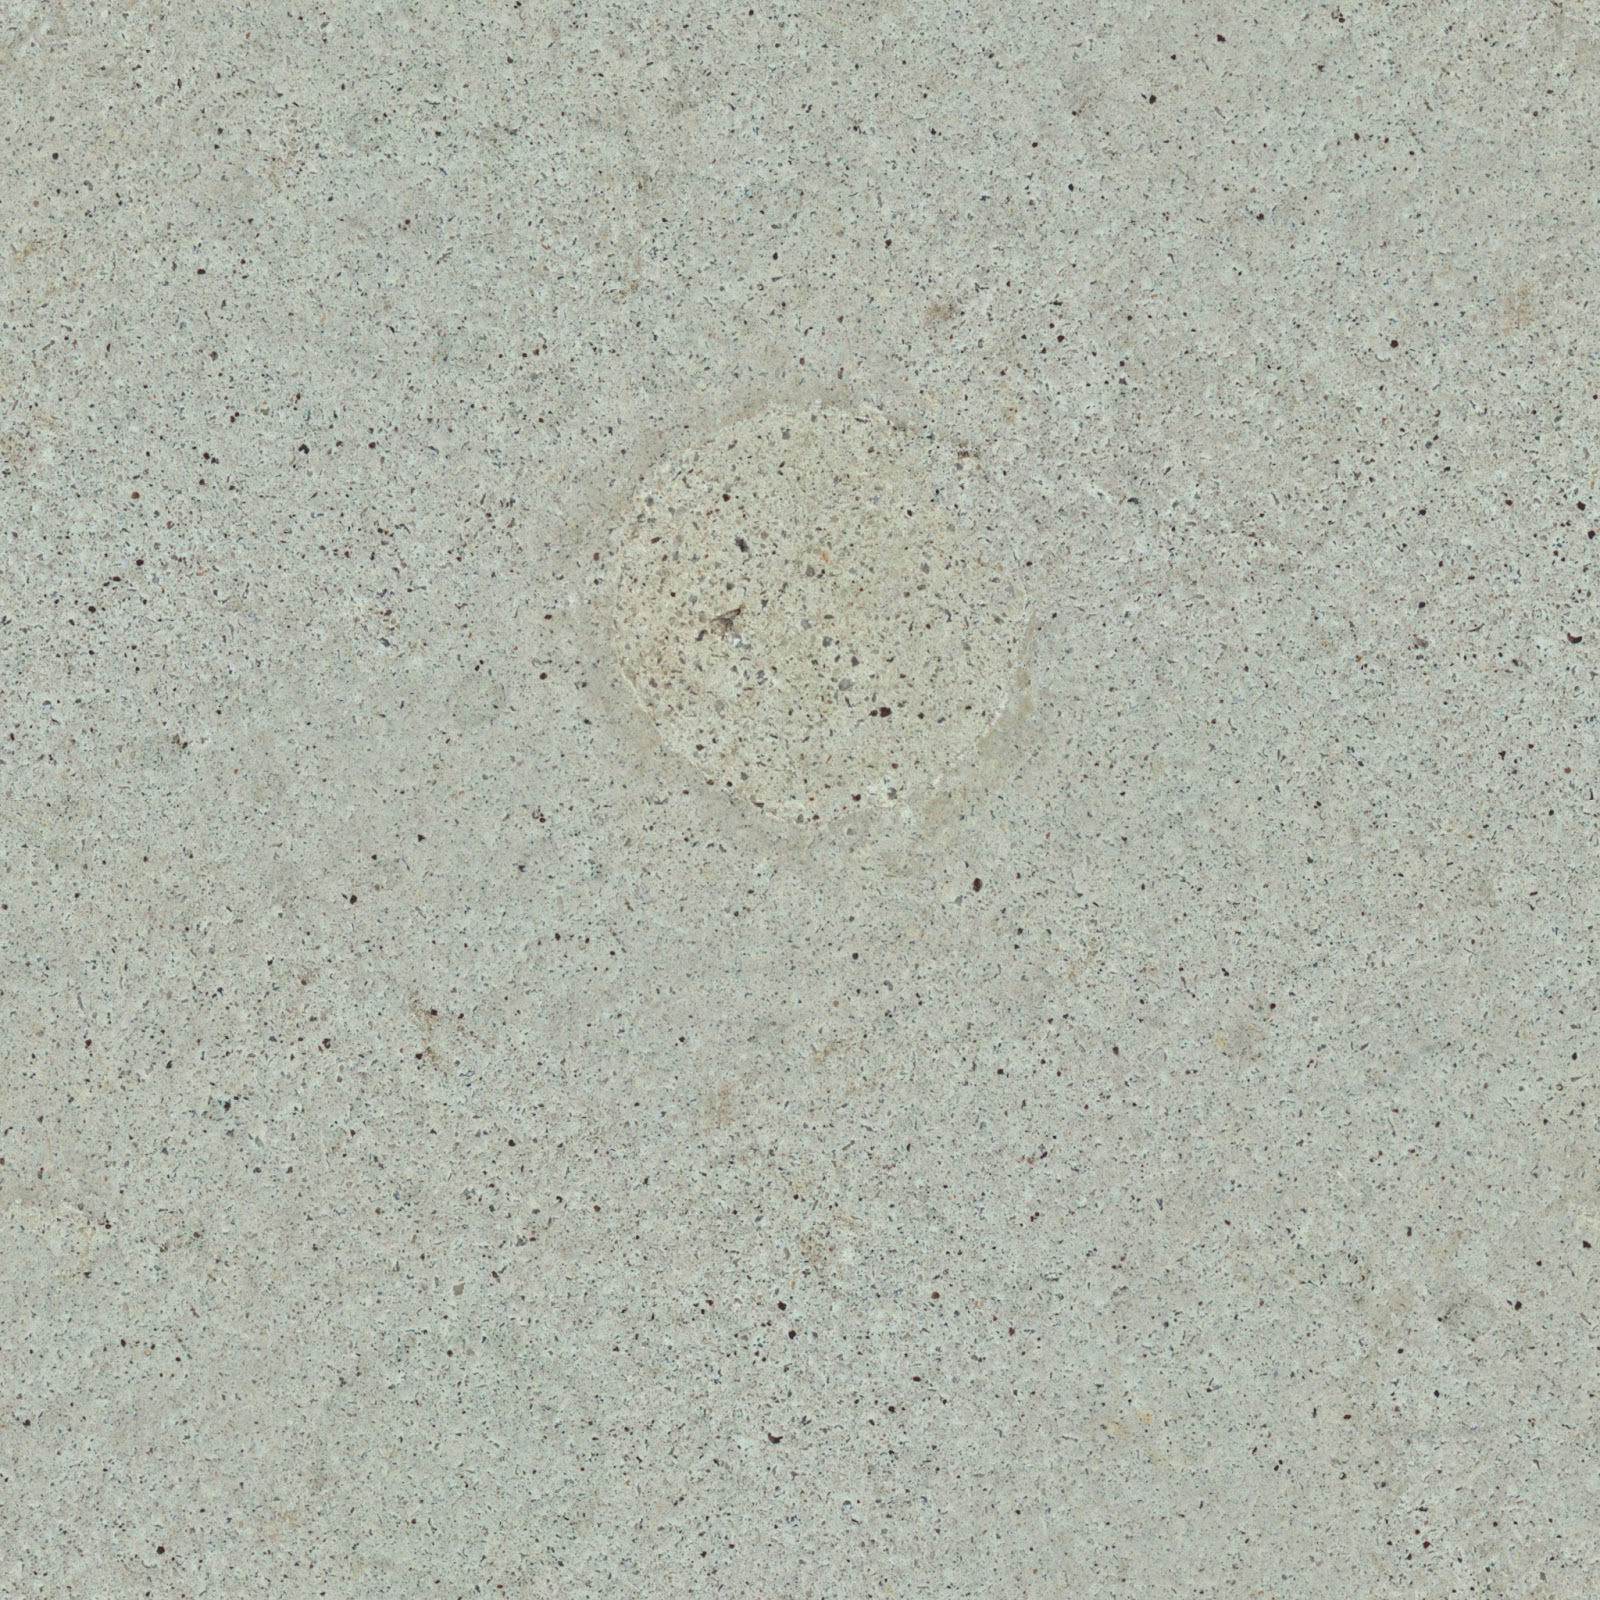 Concrete stained dirty seamless texture 2048x2048